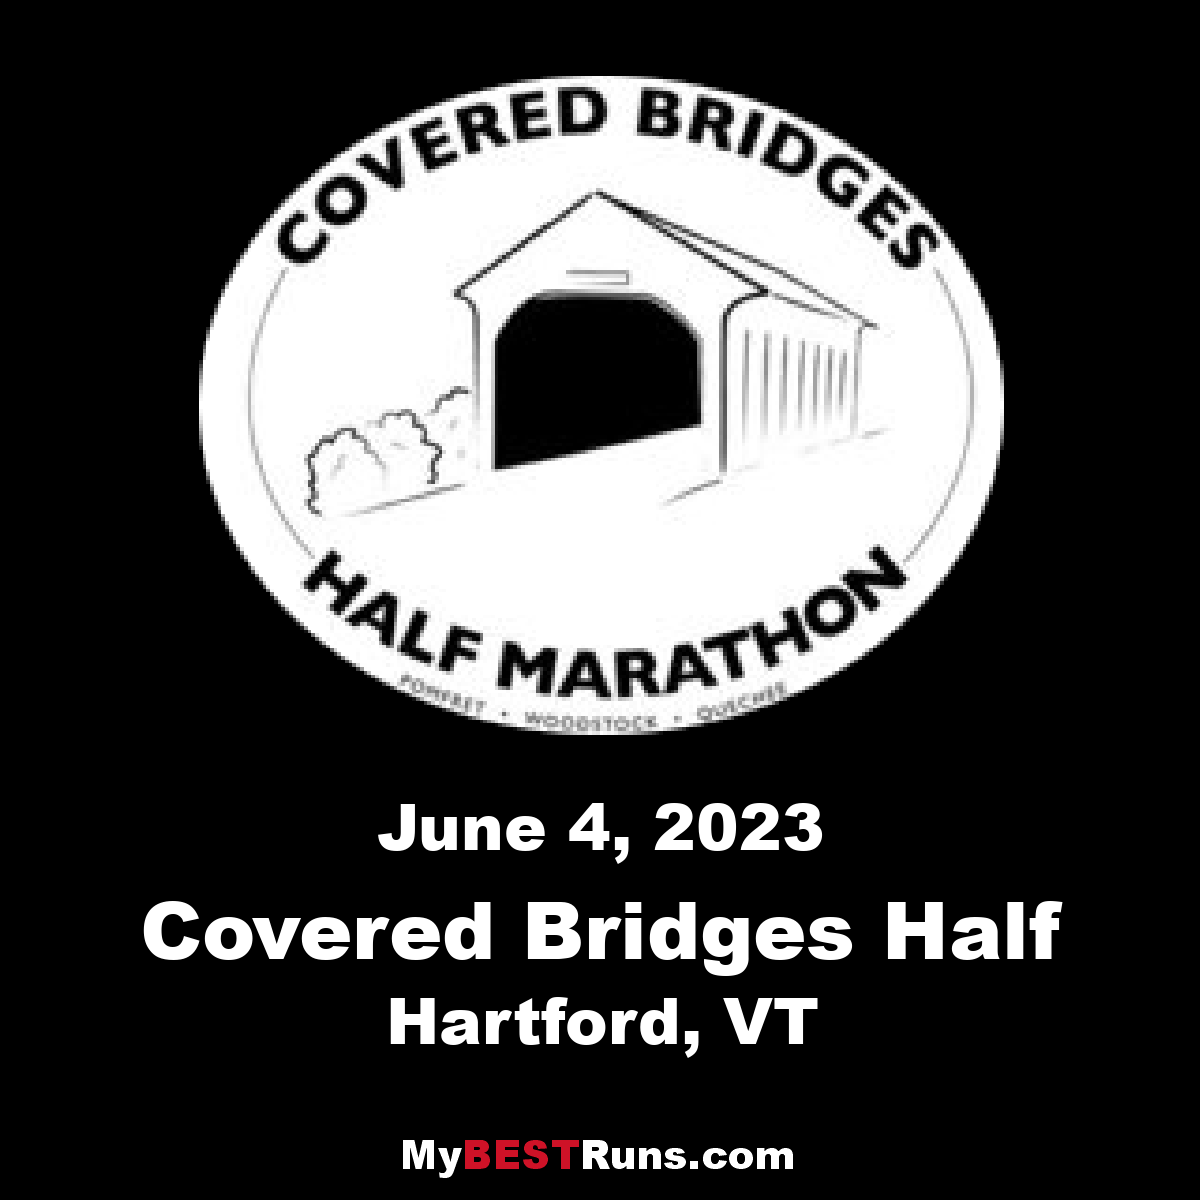 Covered Bridges Half Marathon